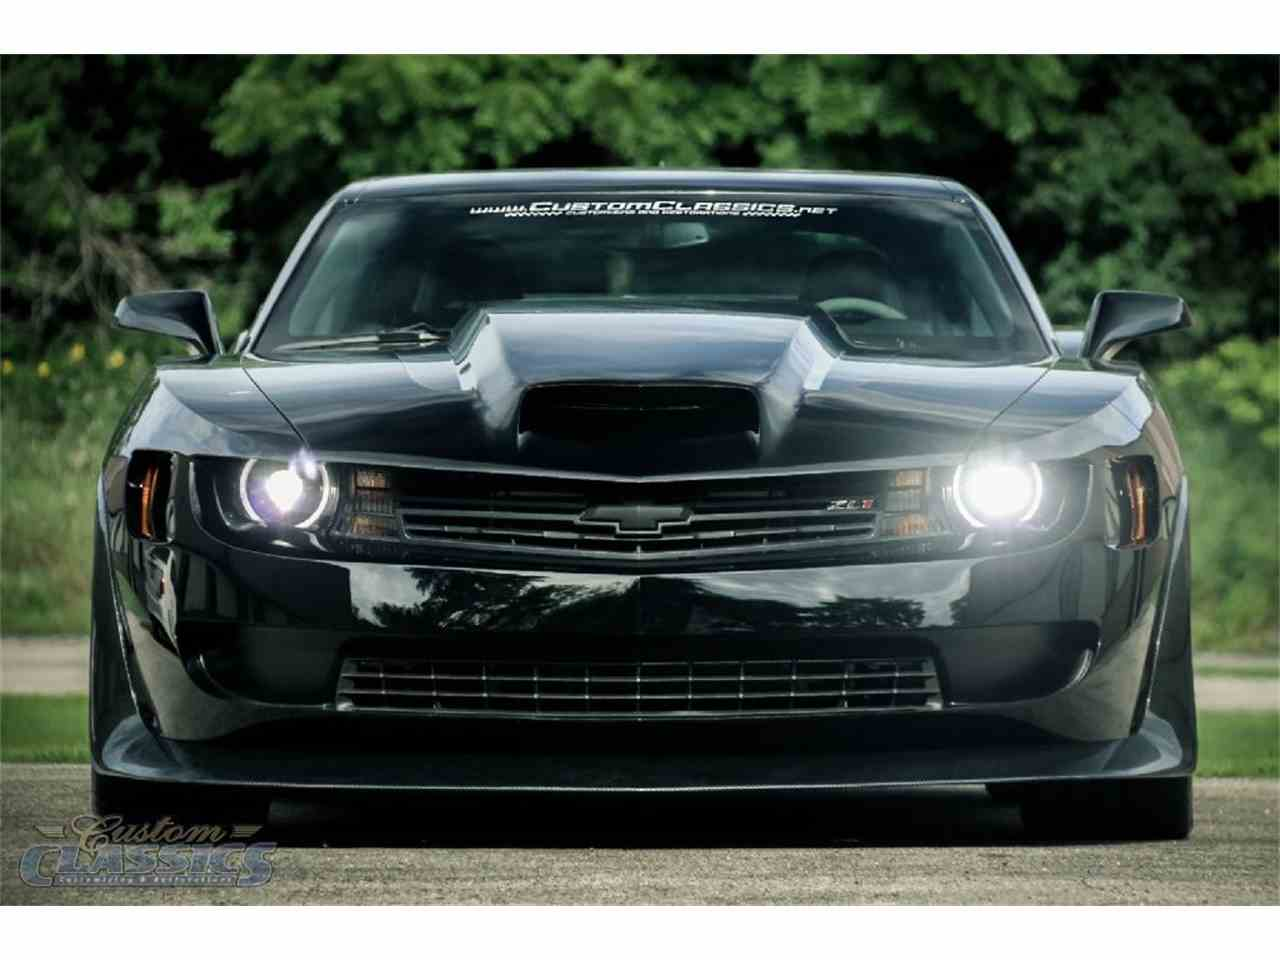 Large Picture of '14 Chevrolet Camaro ZL-1 Widebody Offered by Custom Classics - HK4B